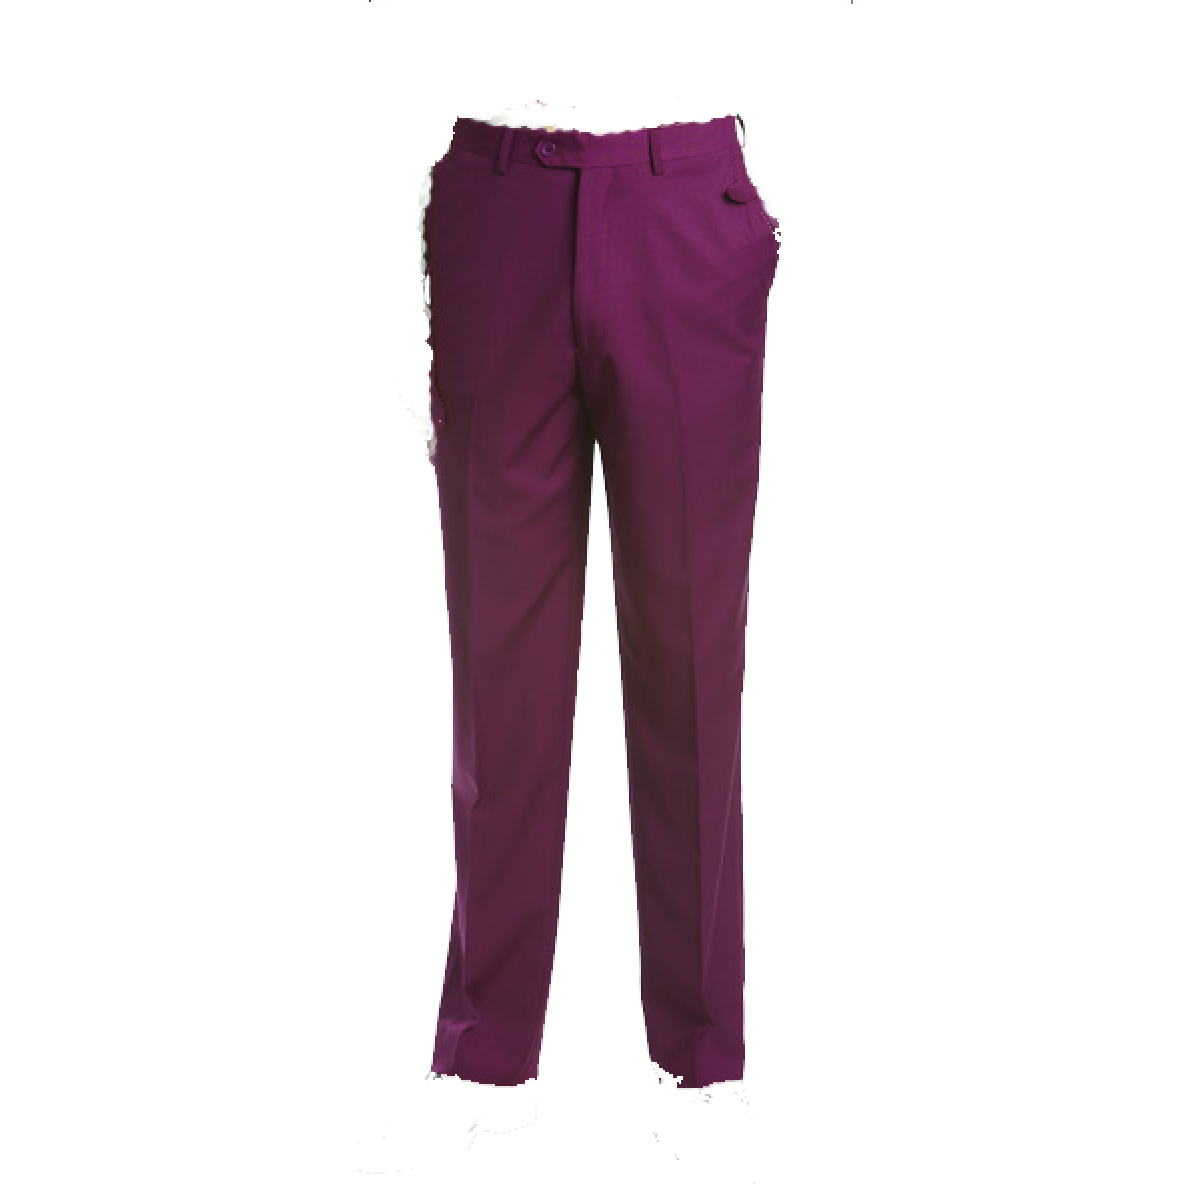 Trousers PNG Background Image SVG Clip arts